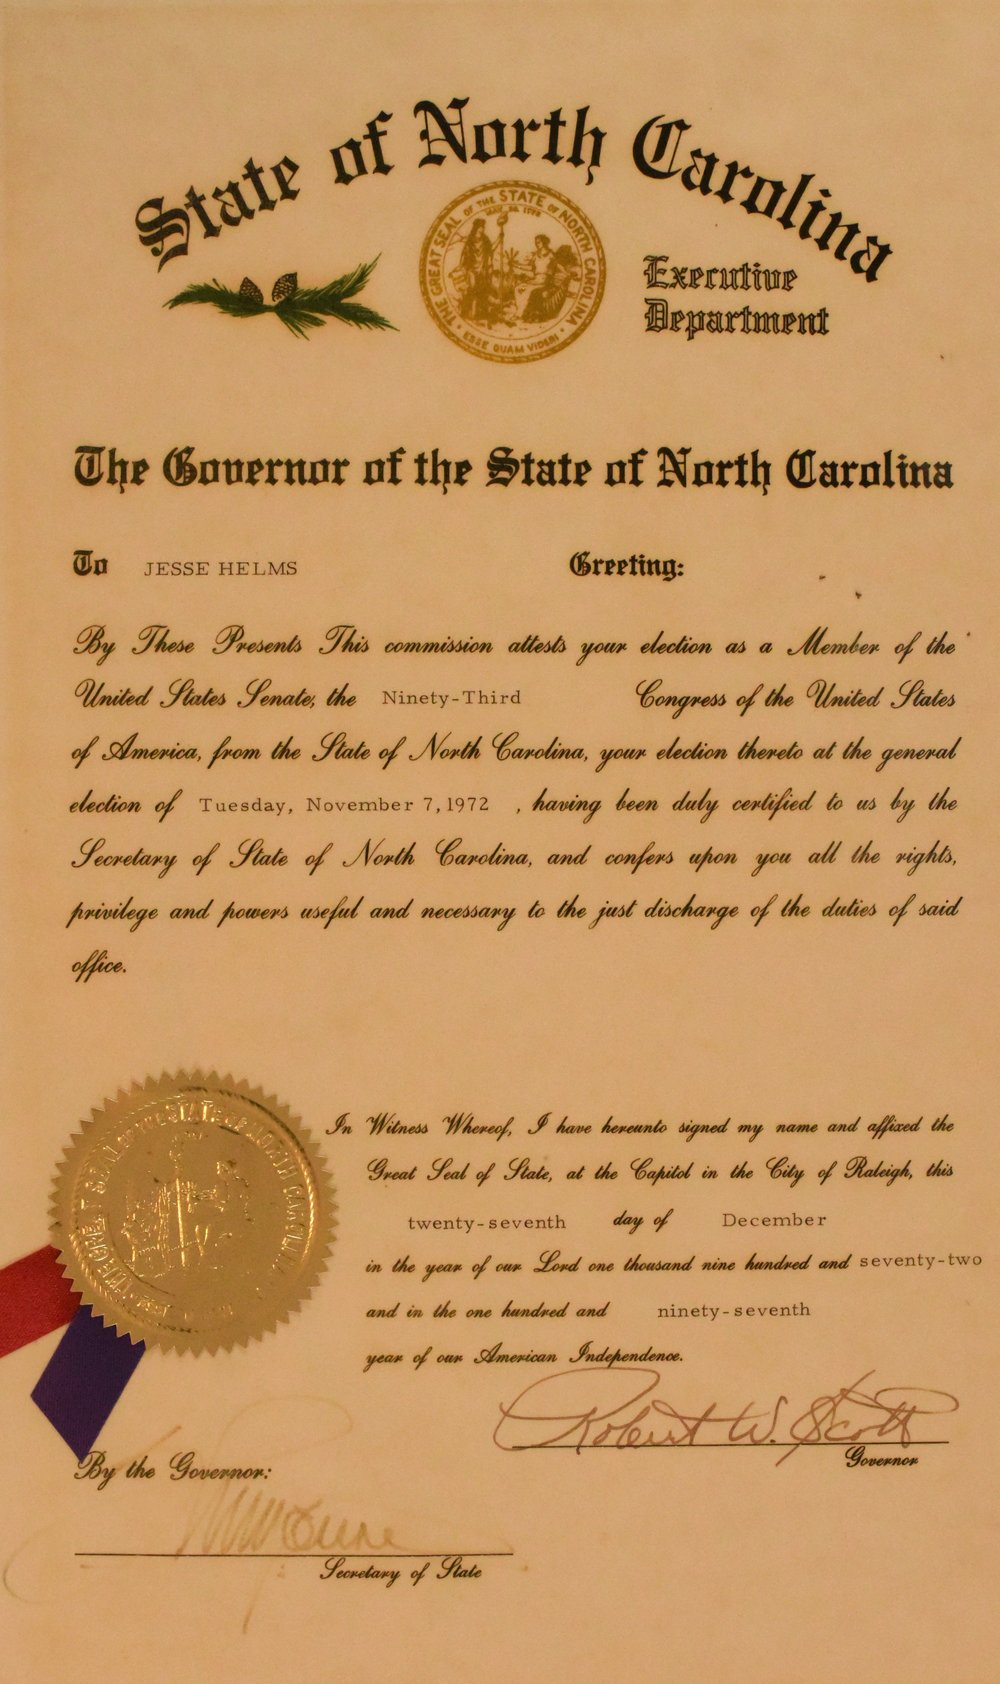 Governor Robert W. Scott signed the form that certified Jesse Helms was elected to the United States Senate on November 7, 1972.